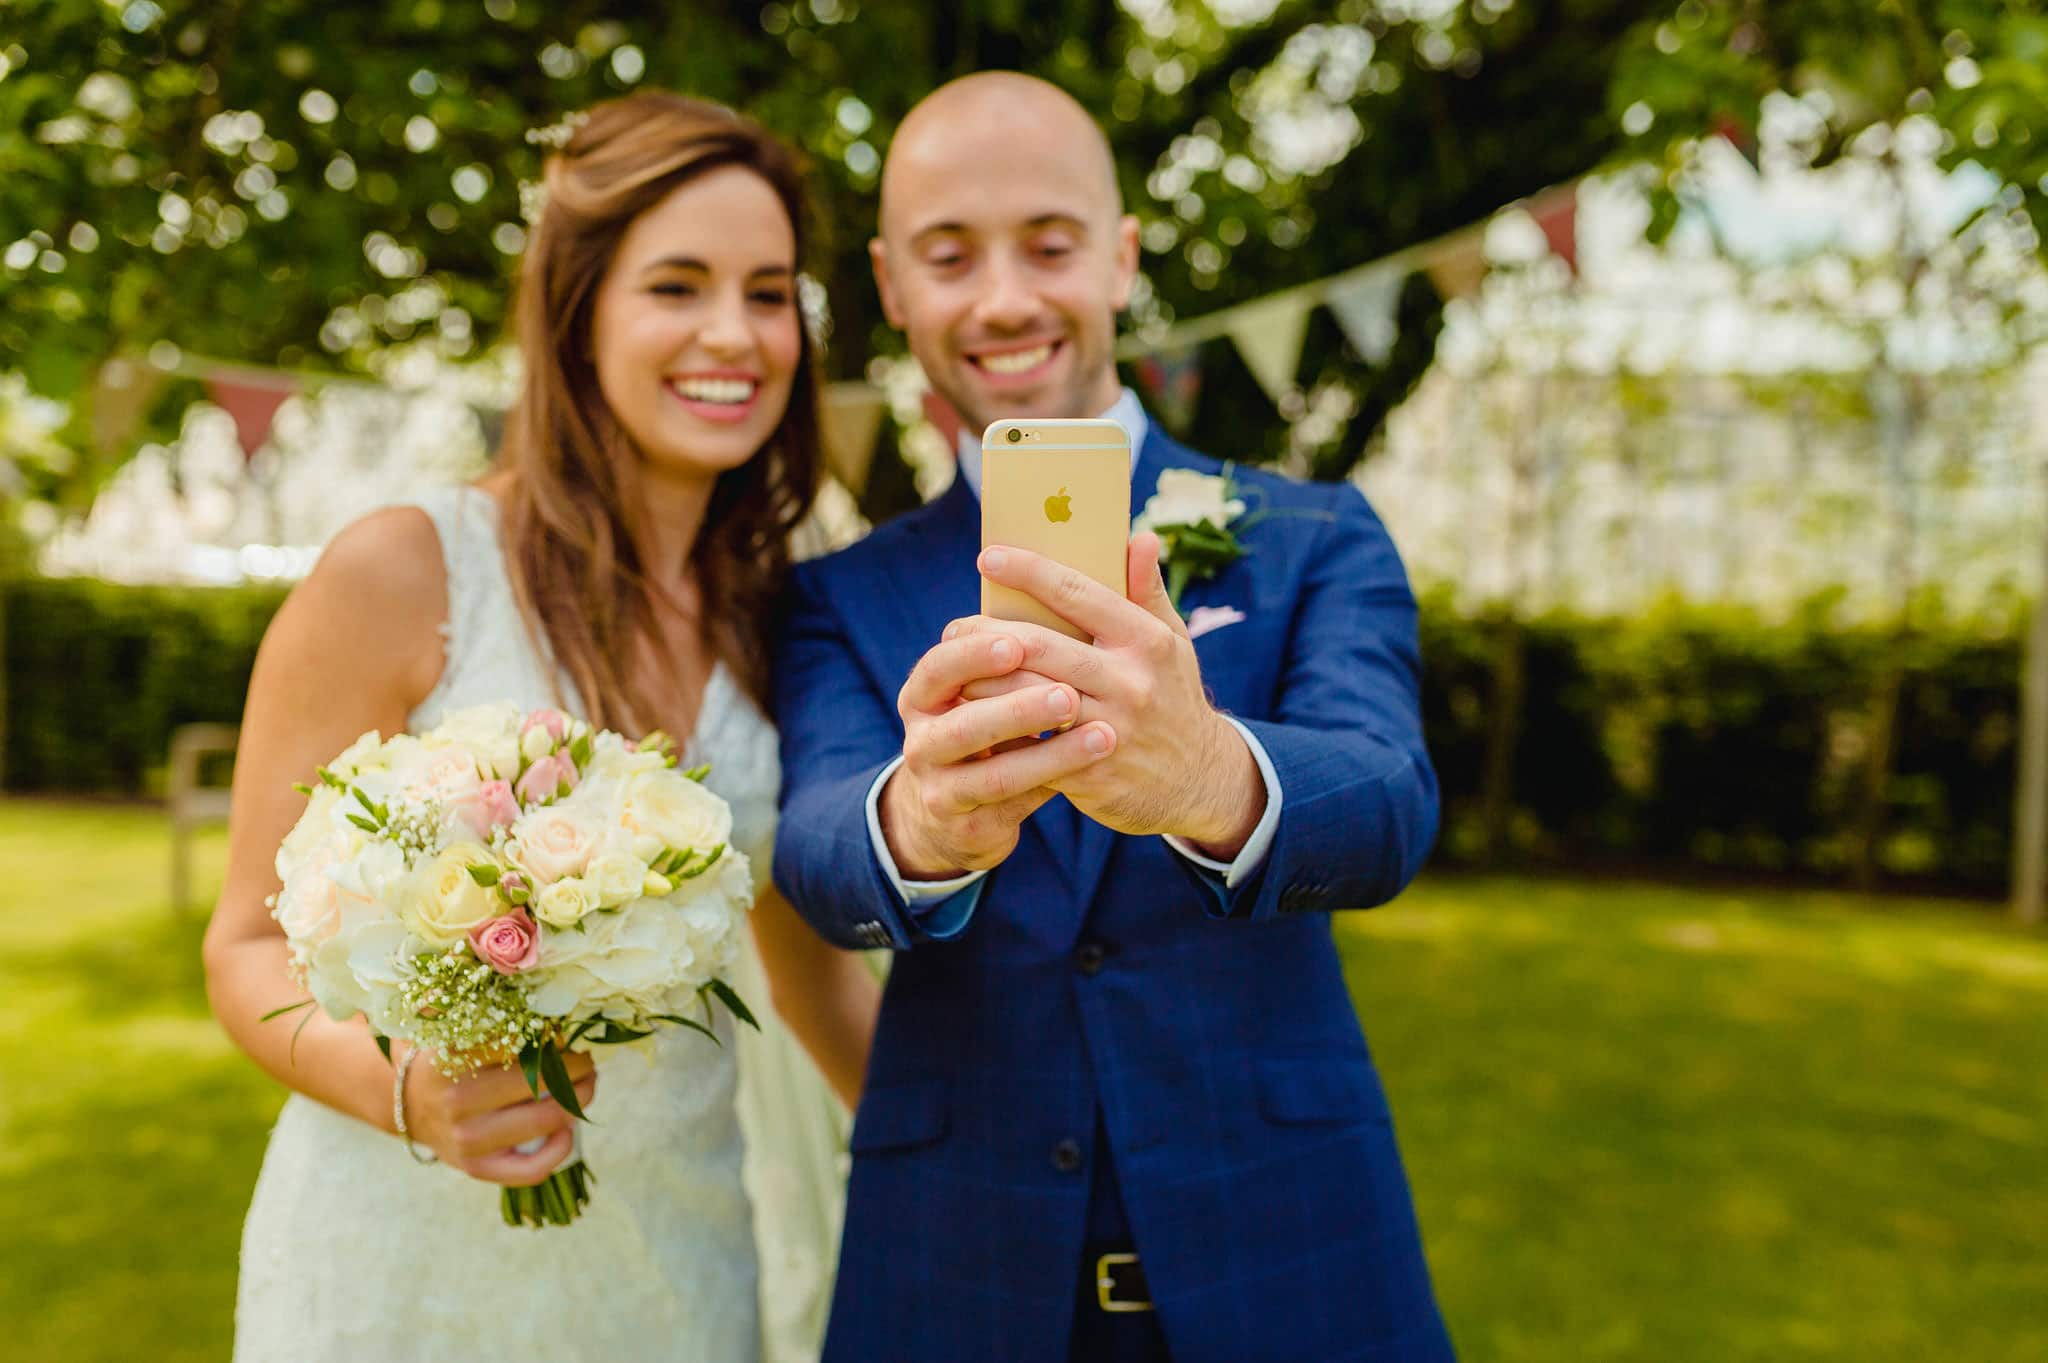 Wedding at Redhouse Barn in Stoke Prior, Worcestershire 100